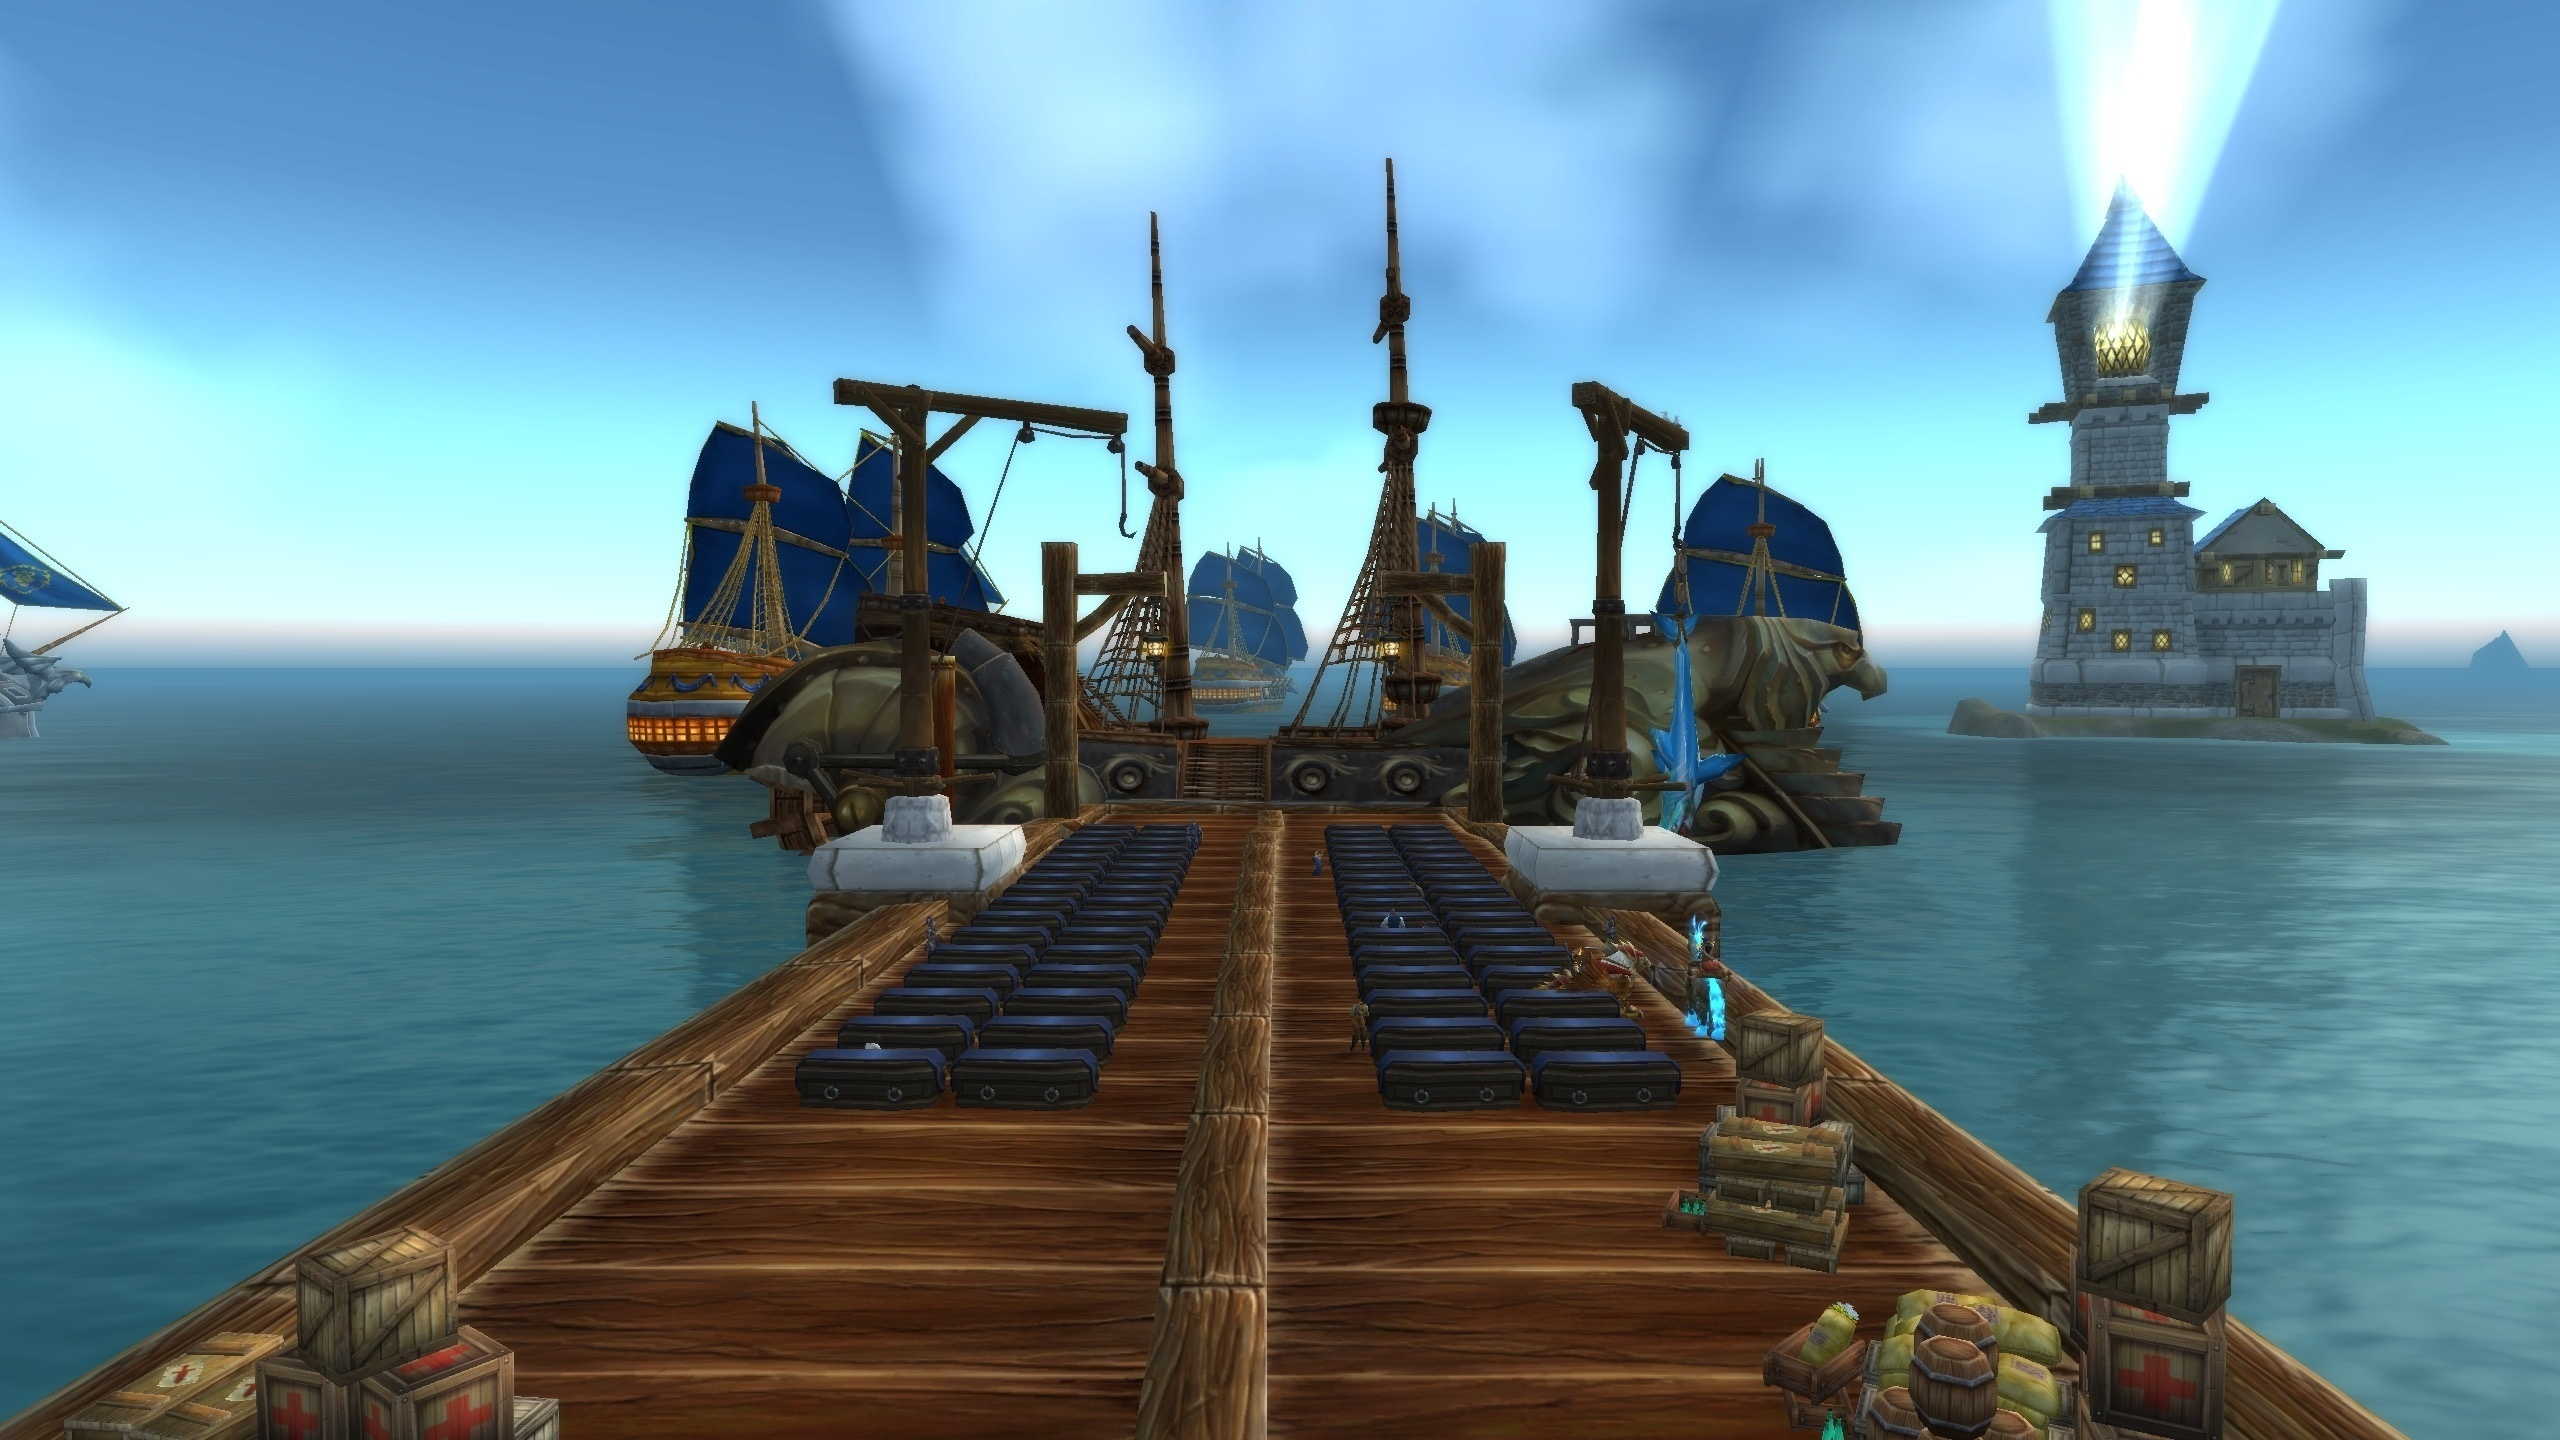 Stormwind and Orgrimmar 26624 Updates - Refugee Camps, God